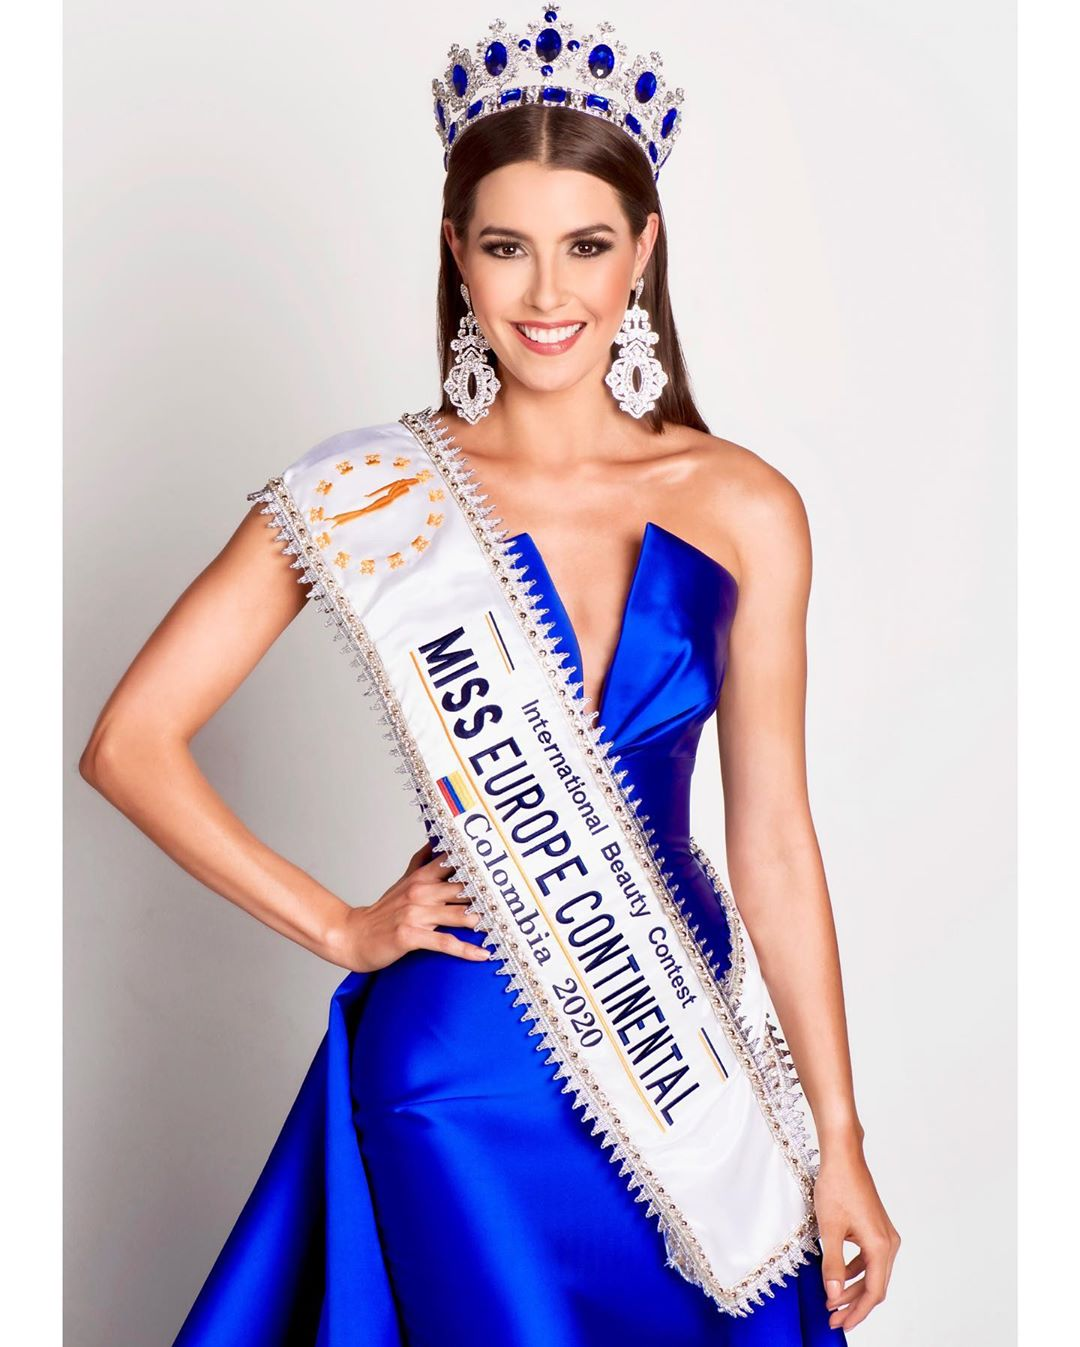 adriana rugeles, miss europe continental colombia 2020-2021. 11690910